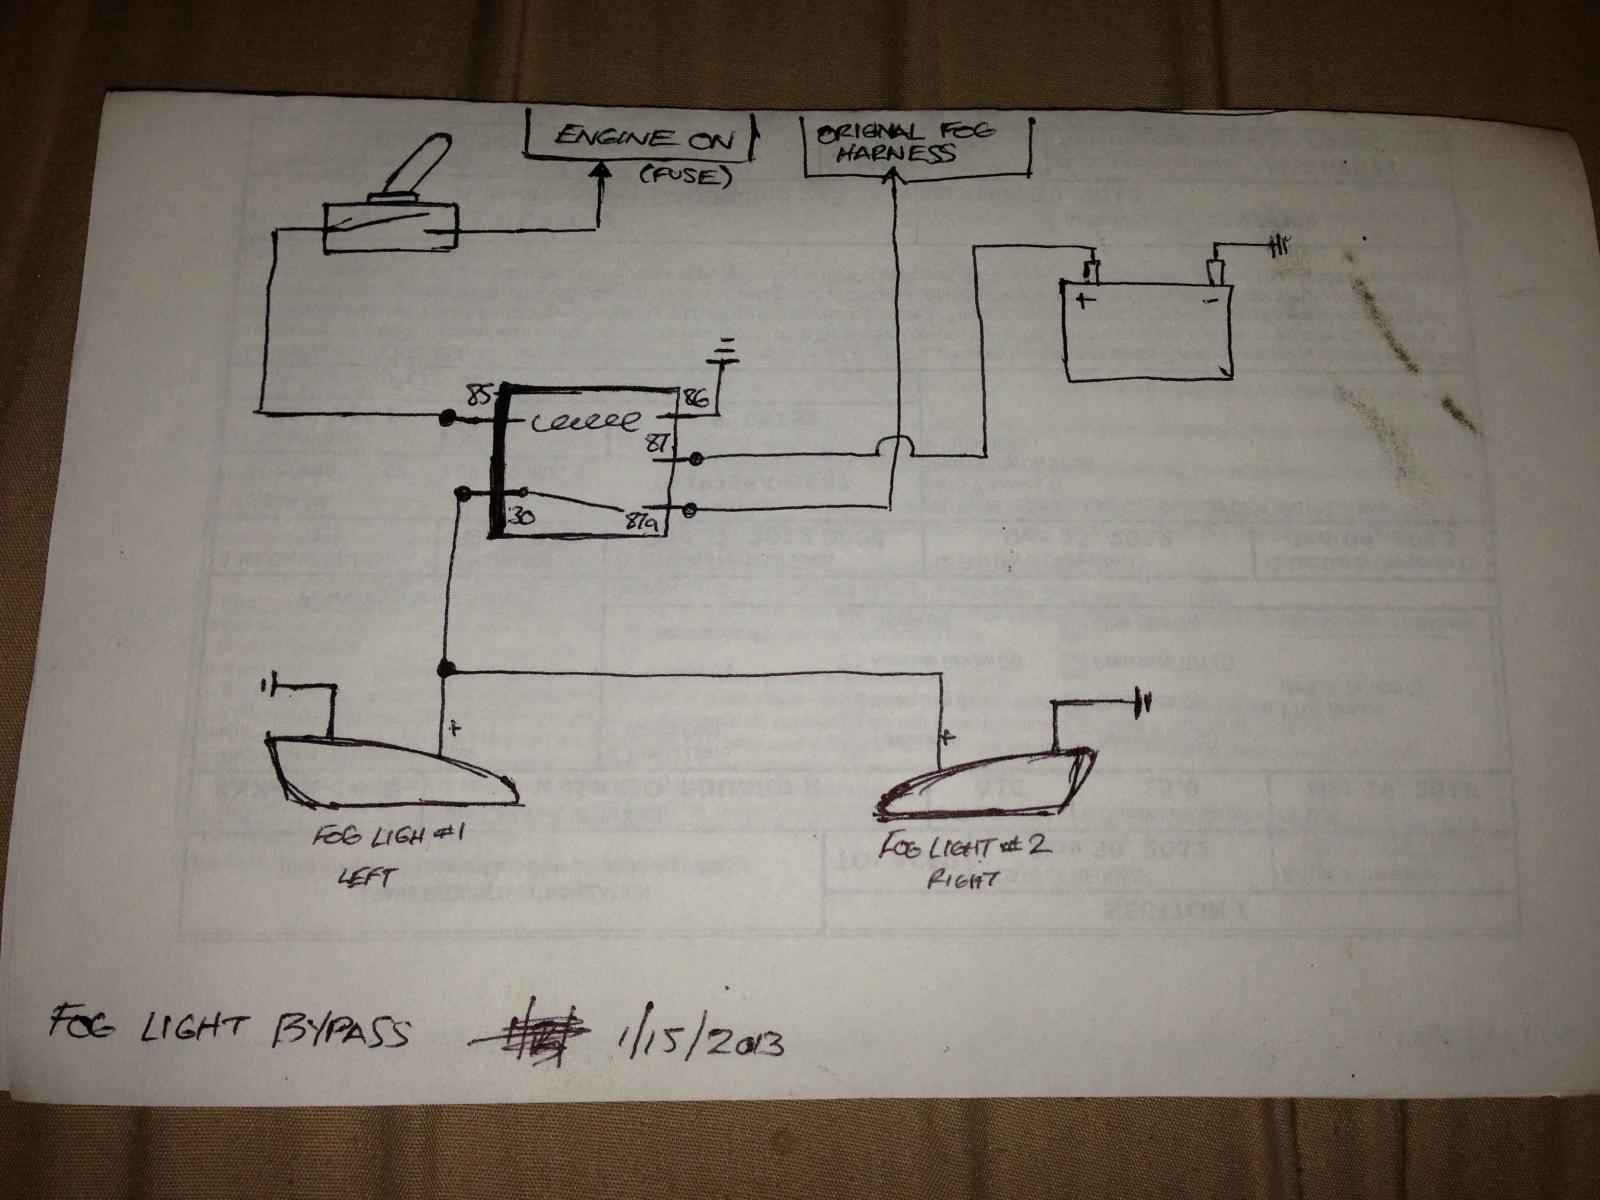 Fog Light Wiring Diagram Simple - Data Wiring Diagrams on